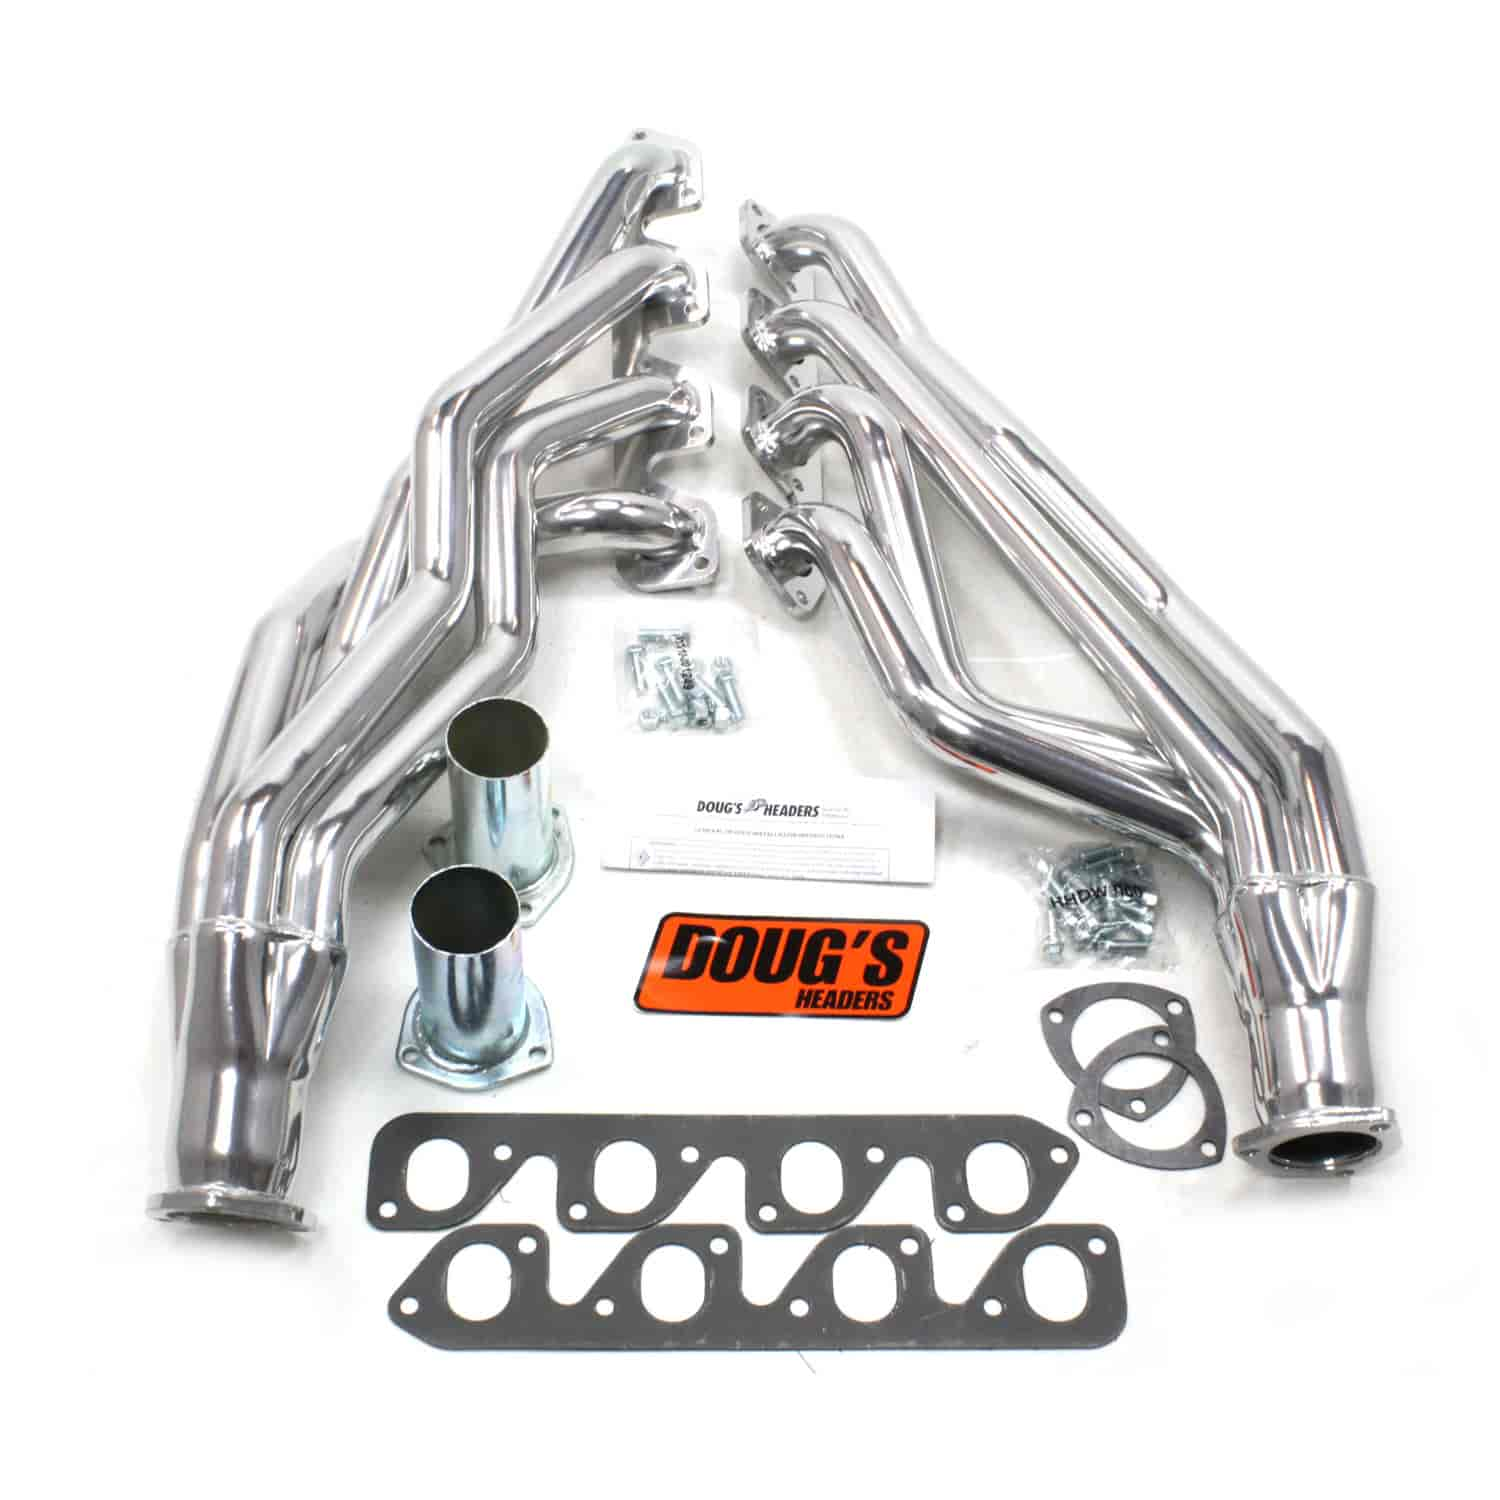 Doug's Headers D670A2